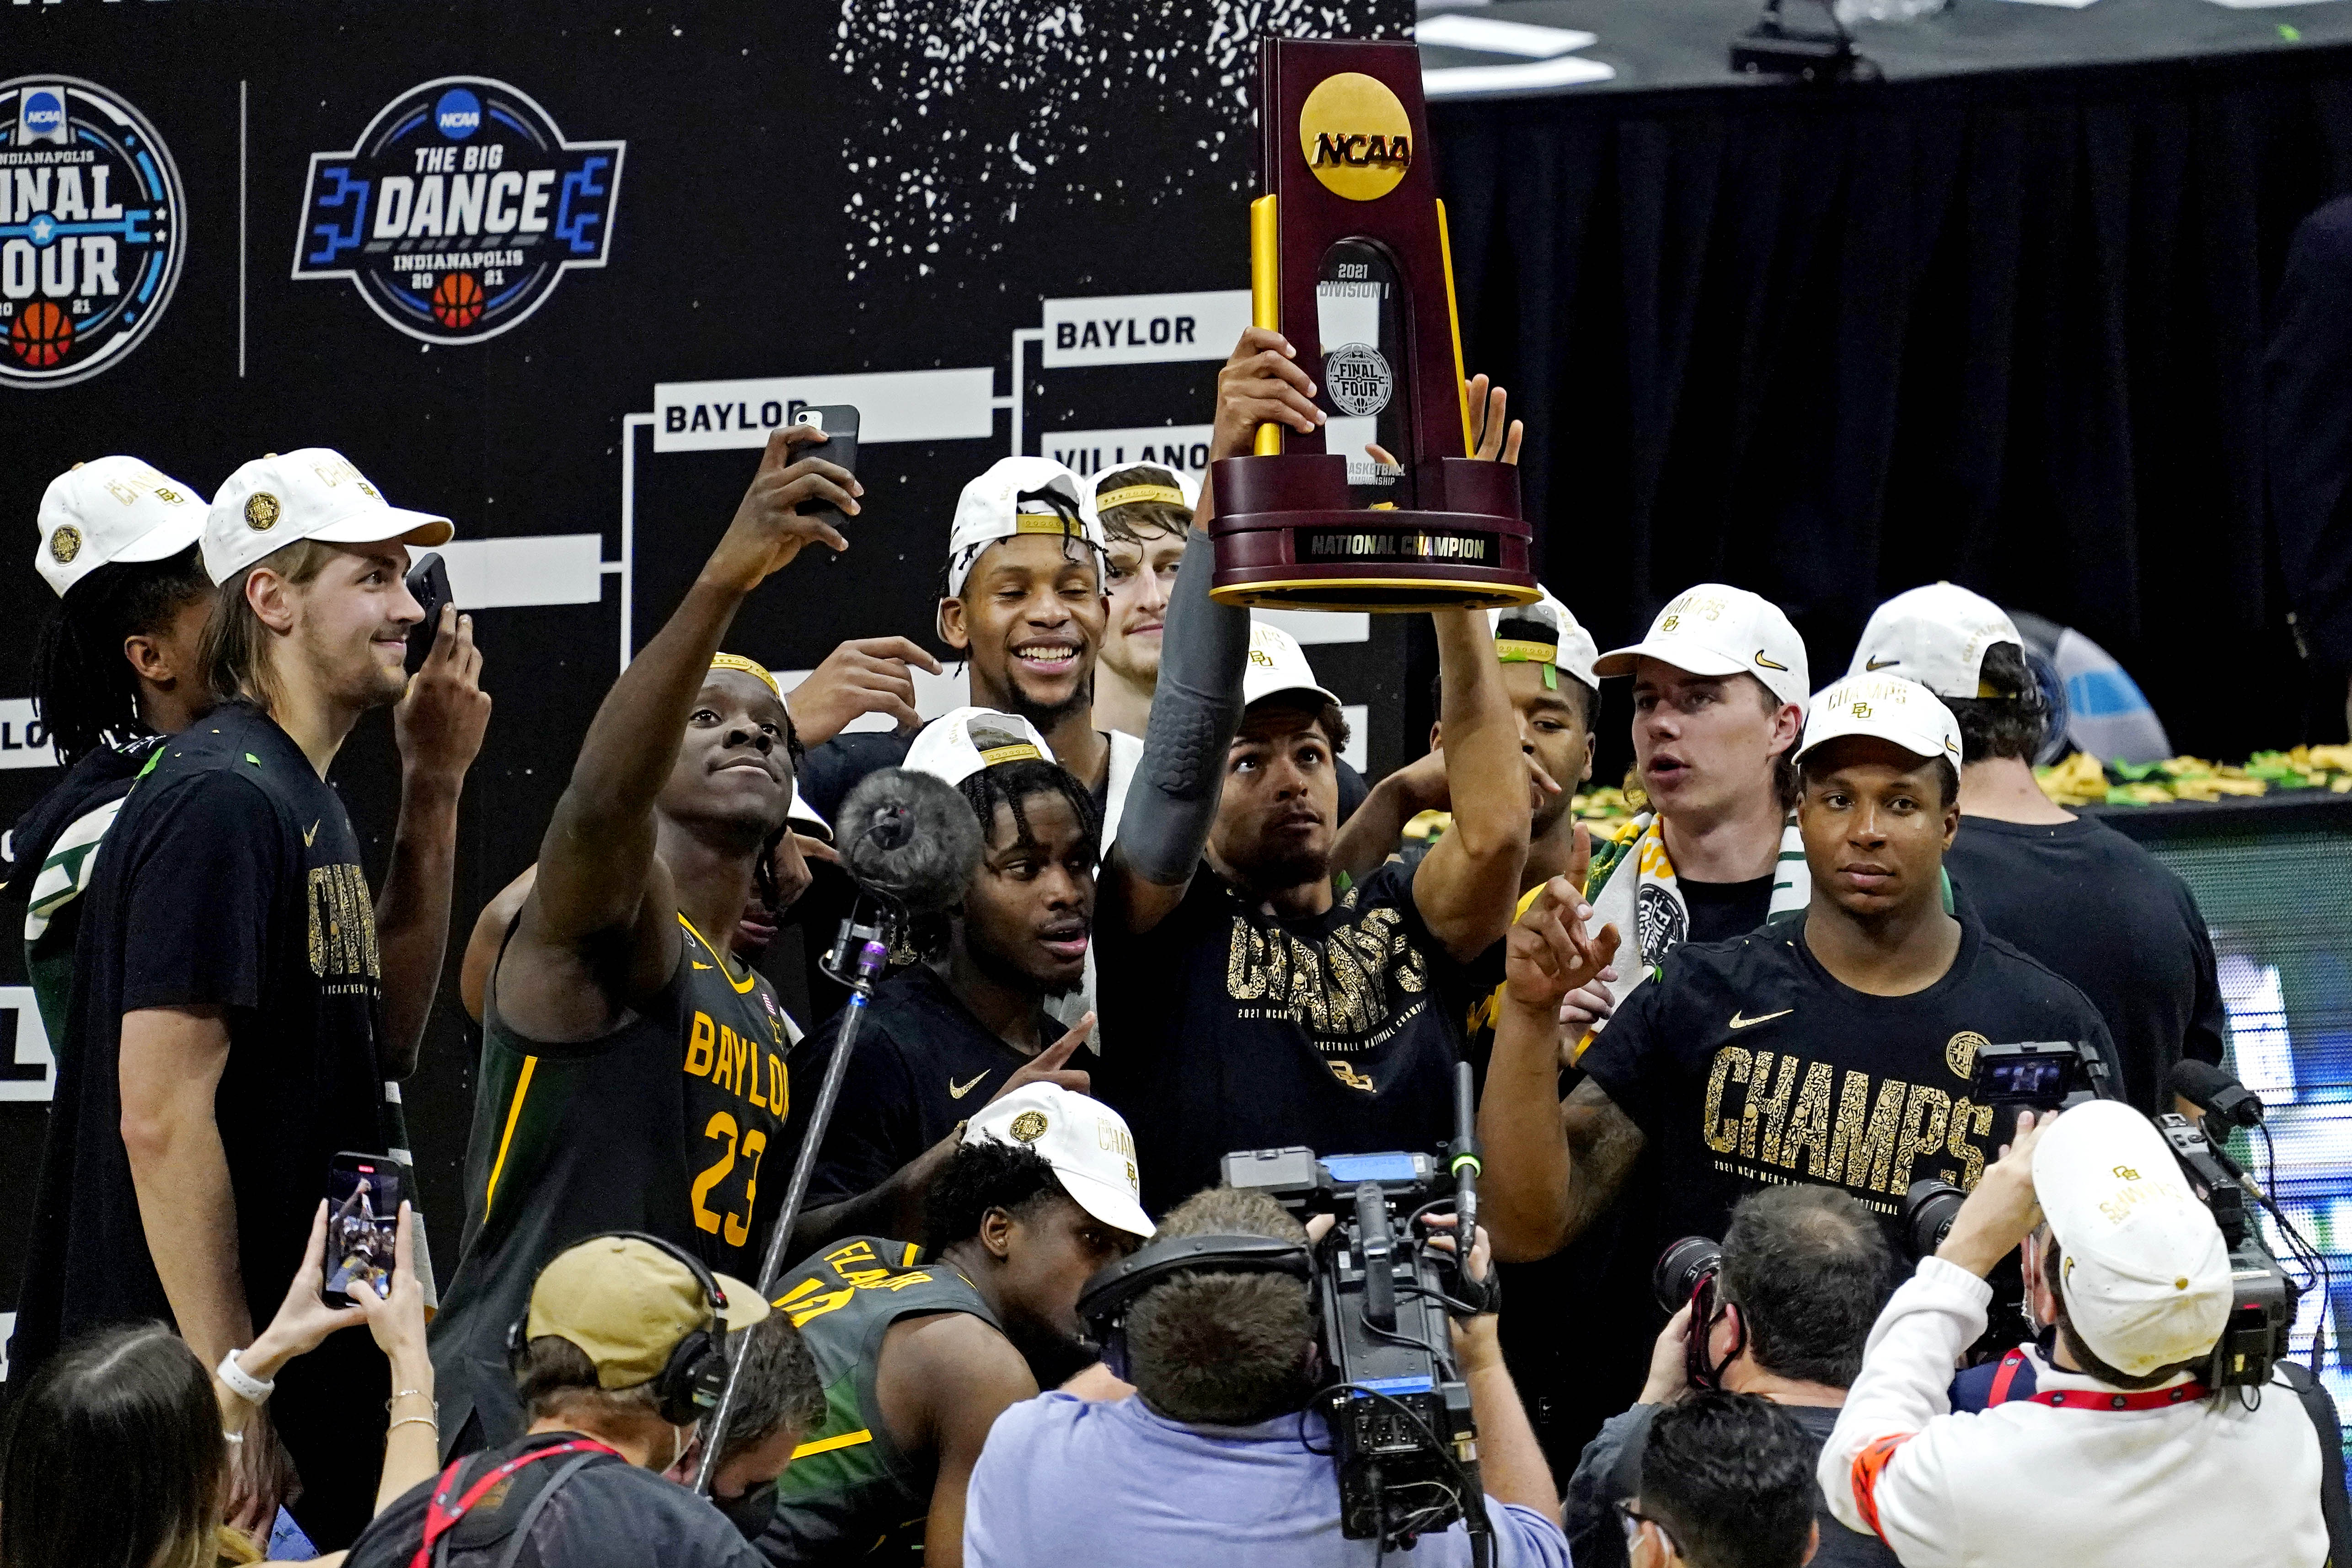 The Baylor Bears celebrate after beating the Gonzaga Bulldogs in the national championship game during the Final Four of the 2021 NCAA Tournament at Lucas Oil Stadium.